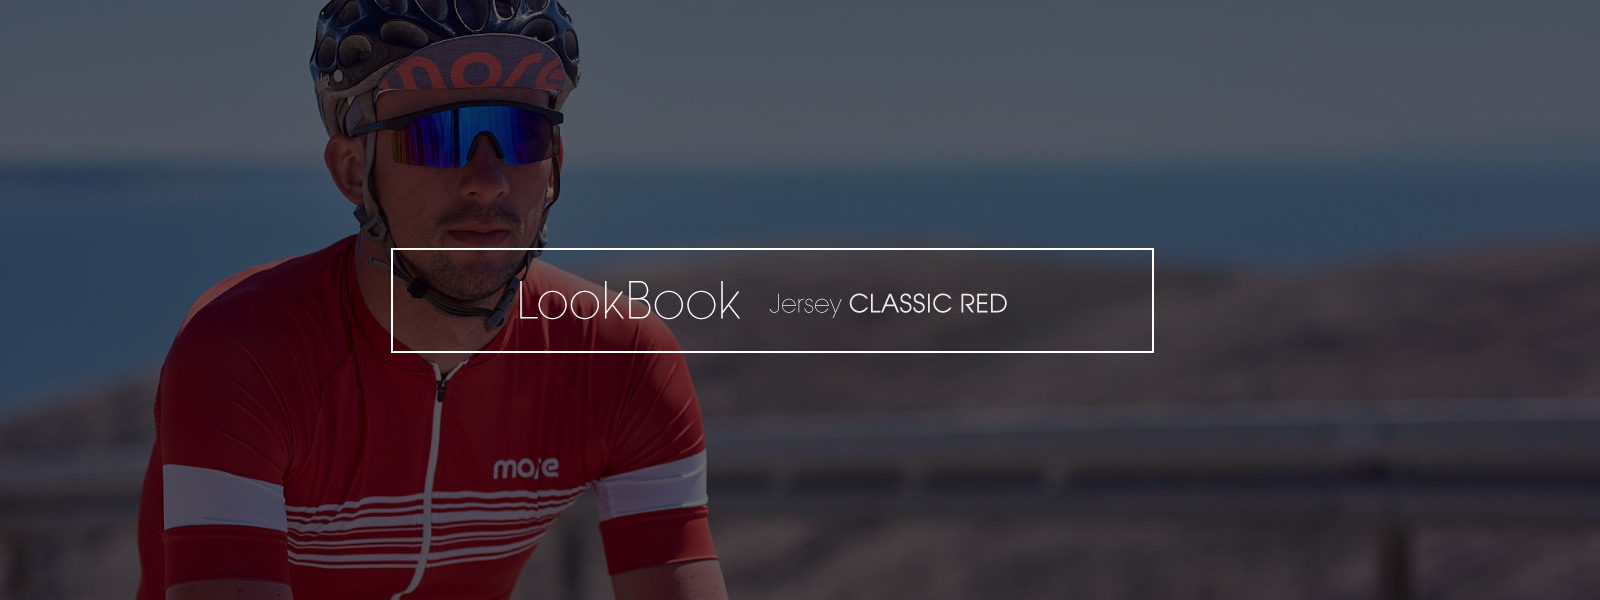 LookBook Jersey Classic Red